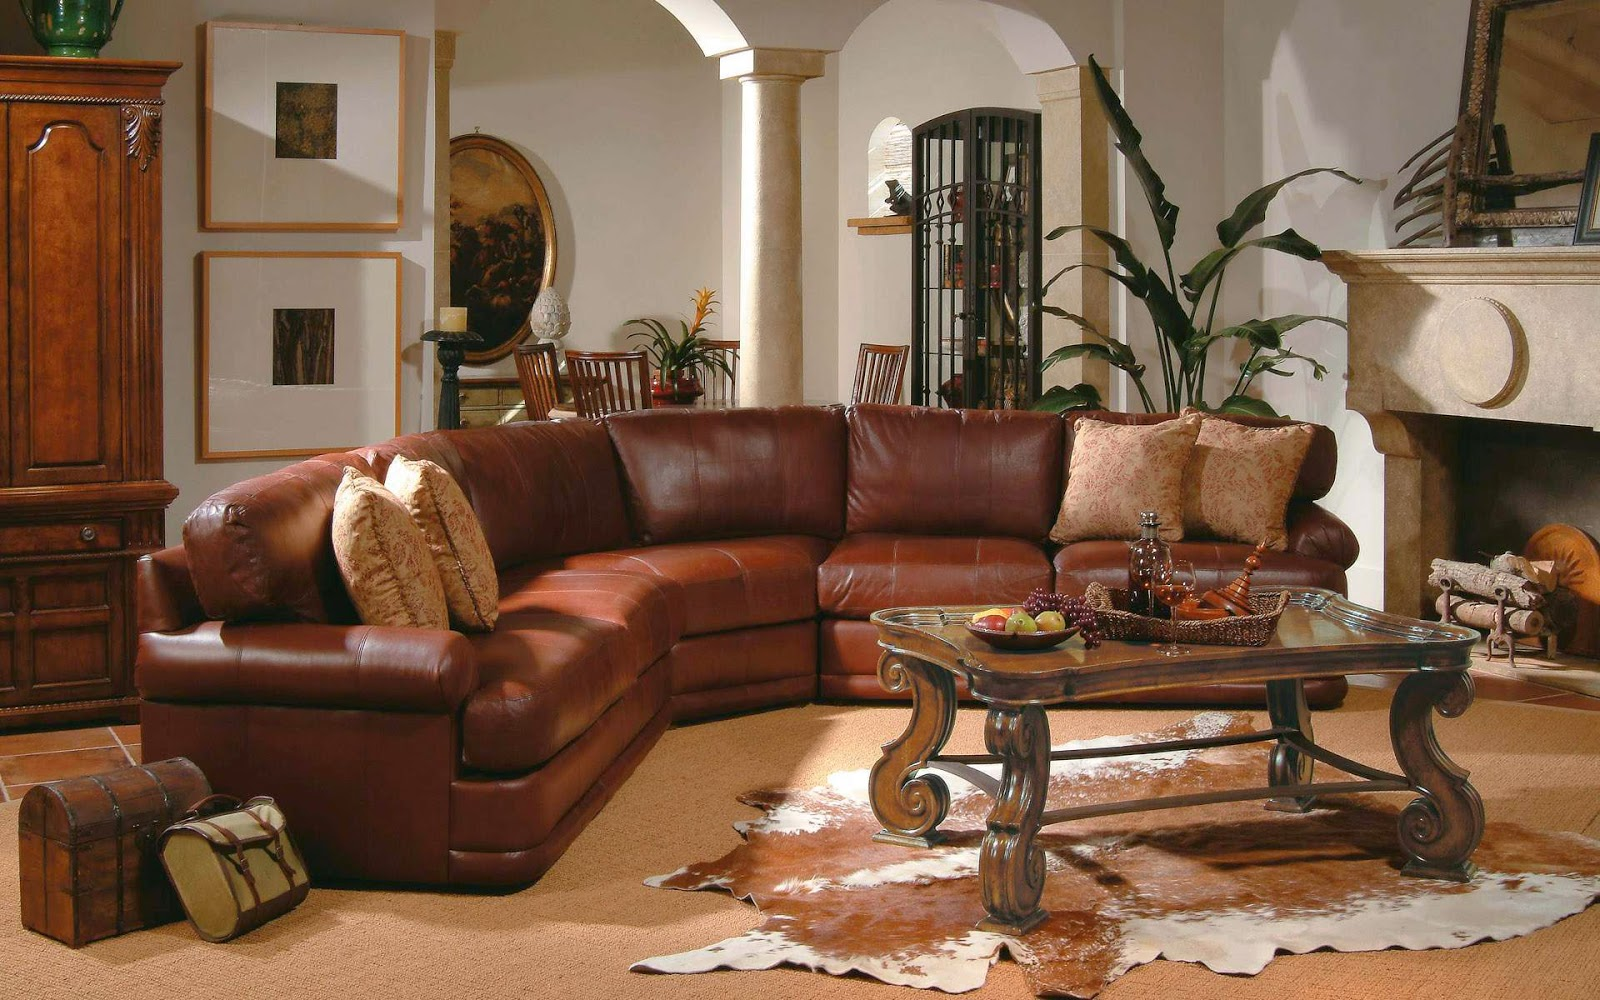 Living Room Decor Ideas With Brown Furniture living room small living room decorating ideas with sectional